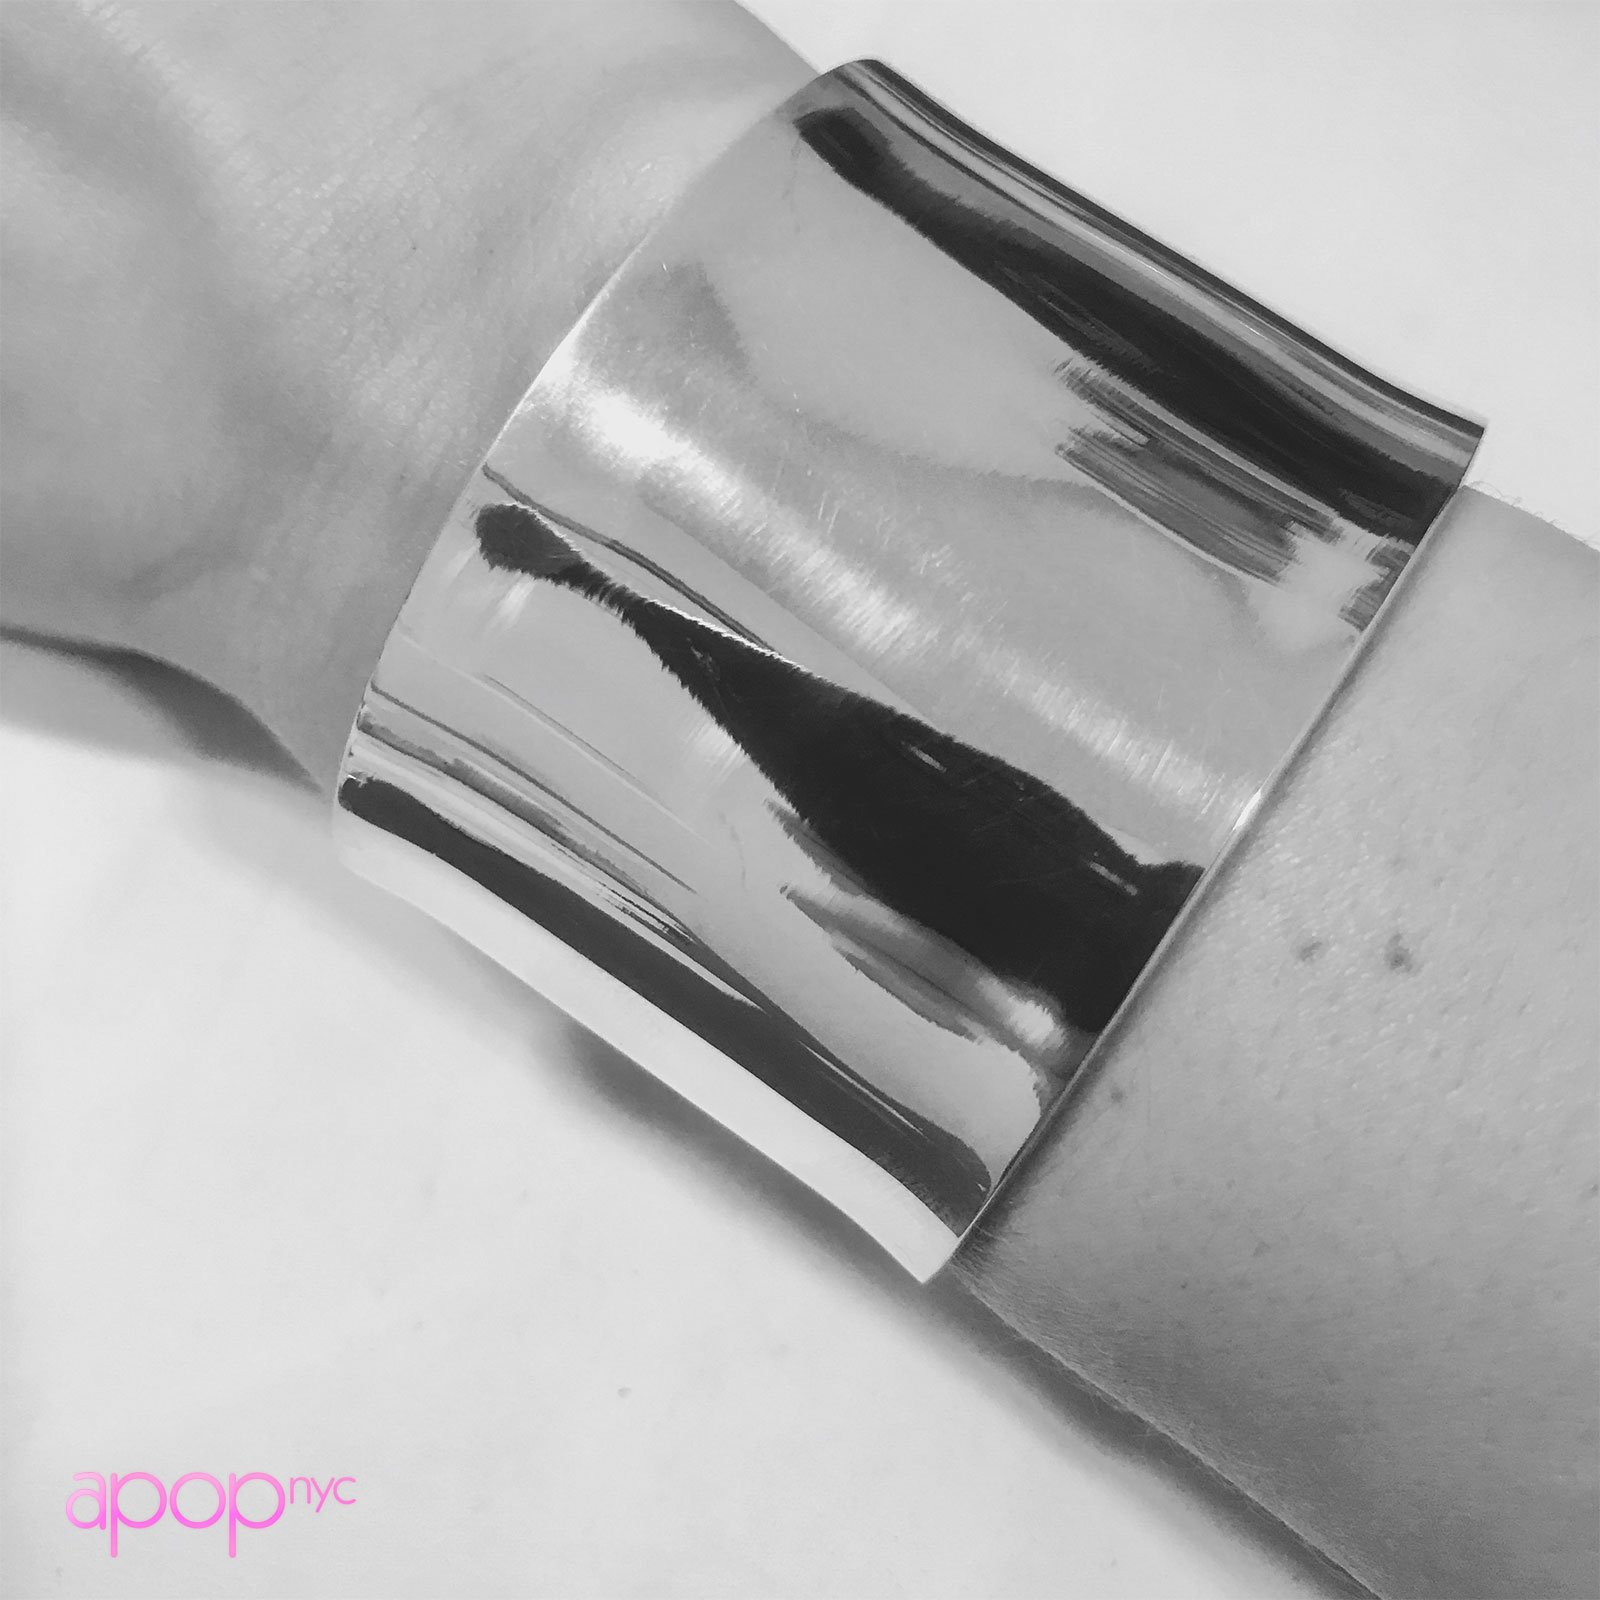 apop nyc 925 Sterling Silver Wide Statement Cuff Bangle Bracelet [Jewelry] by apop nyc (Image #3)